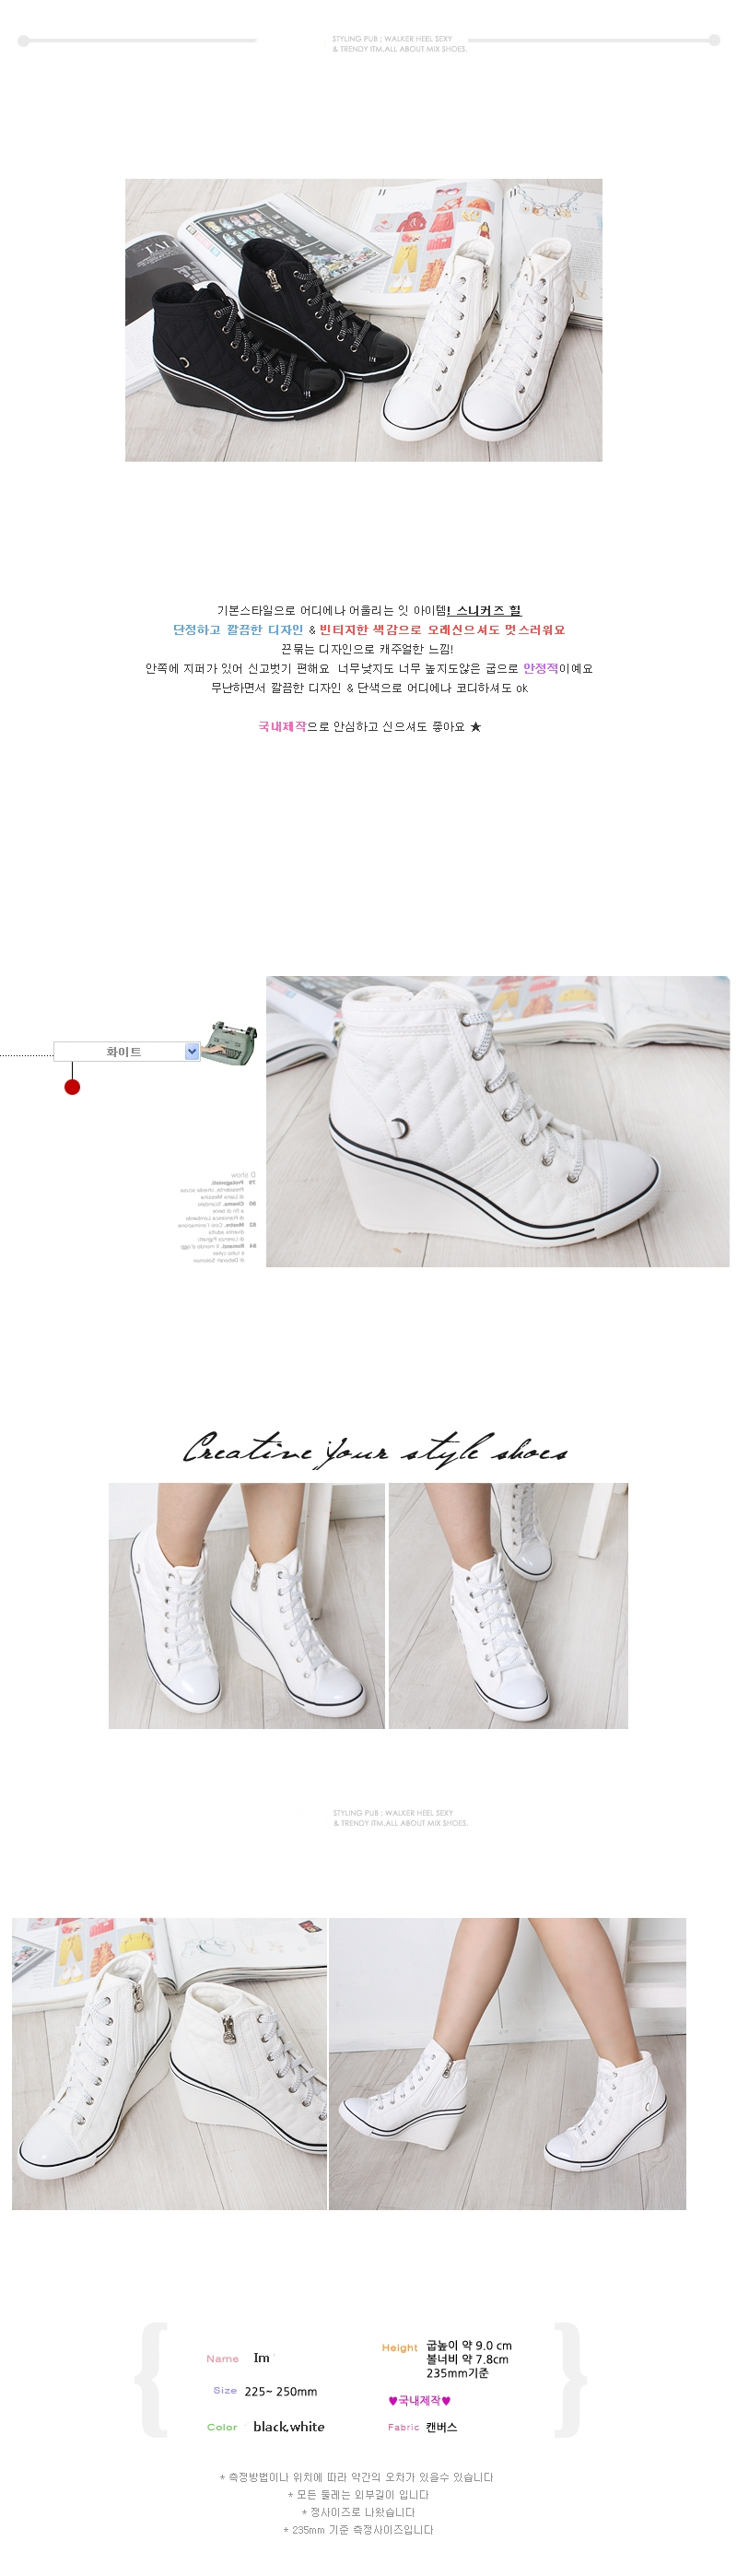 New Womens Wedge Heels Casual Sneakers Shoes Ankle Boots